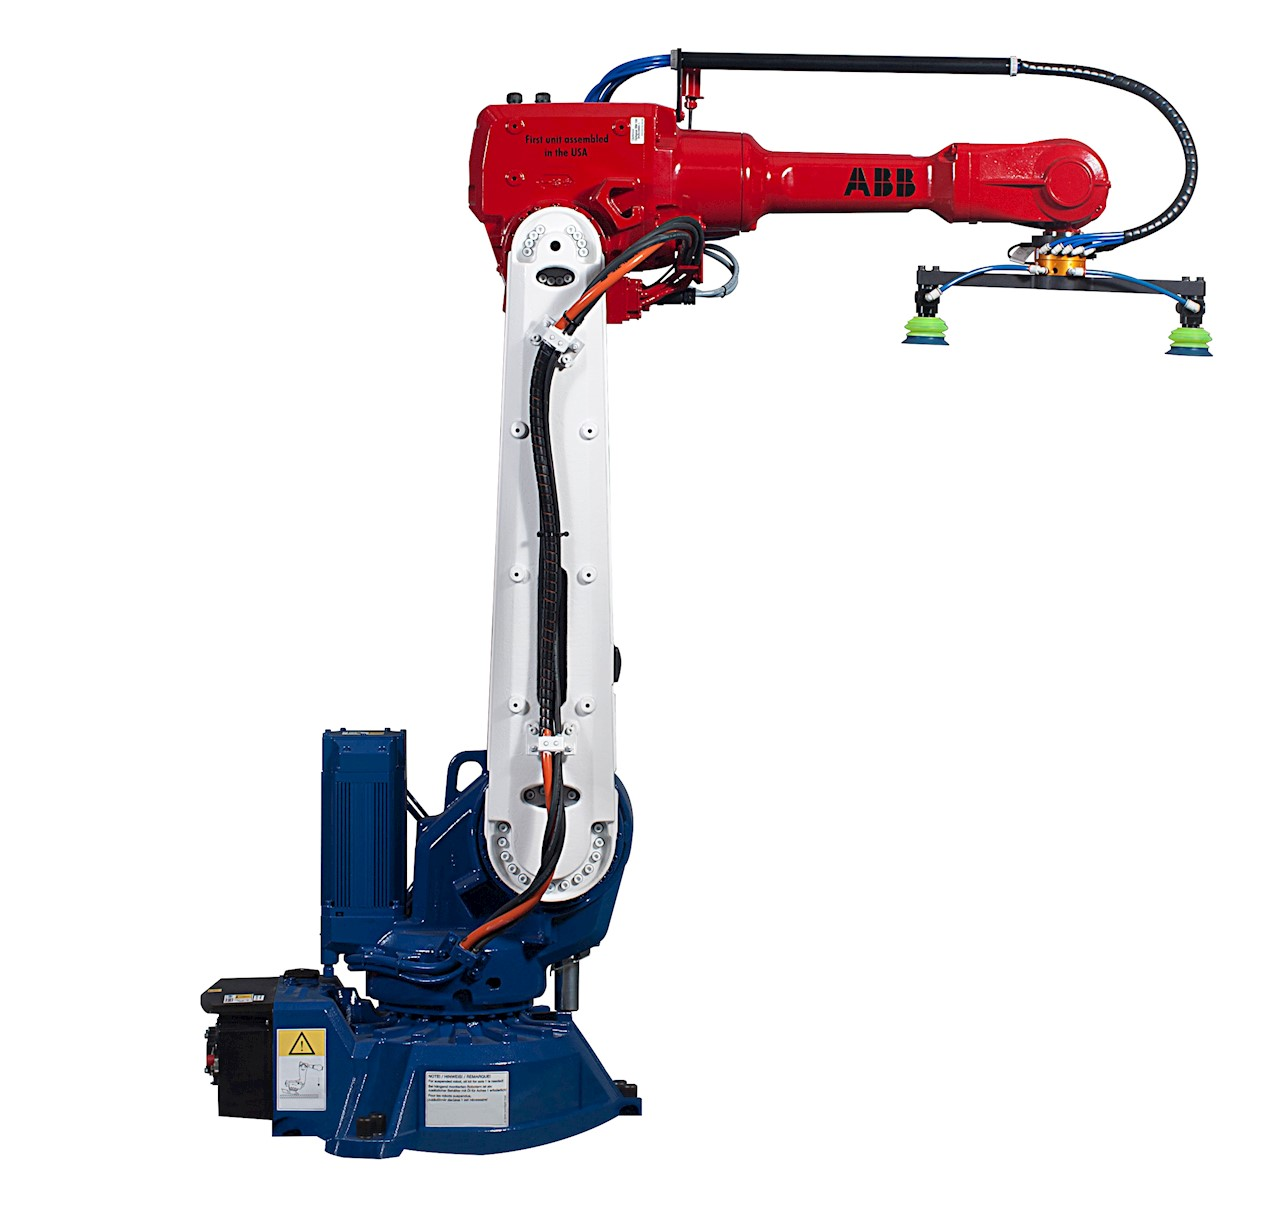 The compact robot,  painted with commemorative red, white and blue paint, will be used for material handling of in-process engine component parts at the Hitachi Greensburg, IN facility